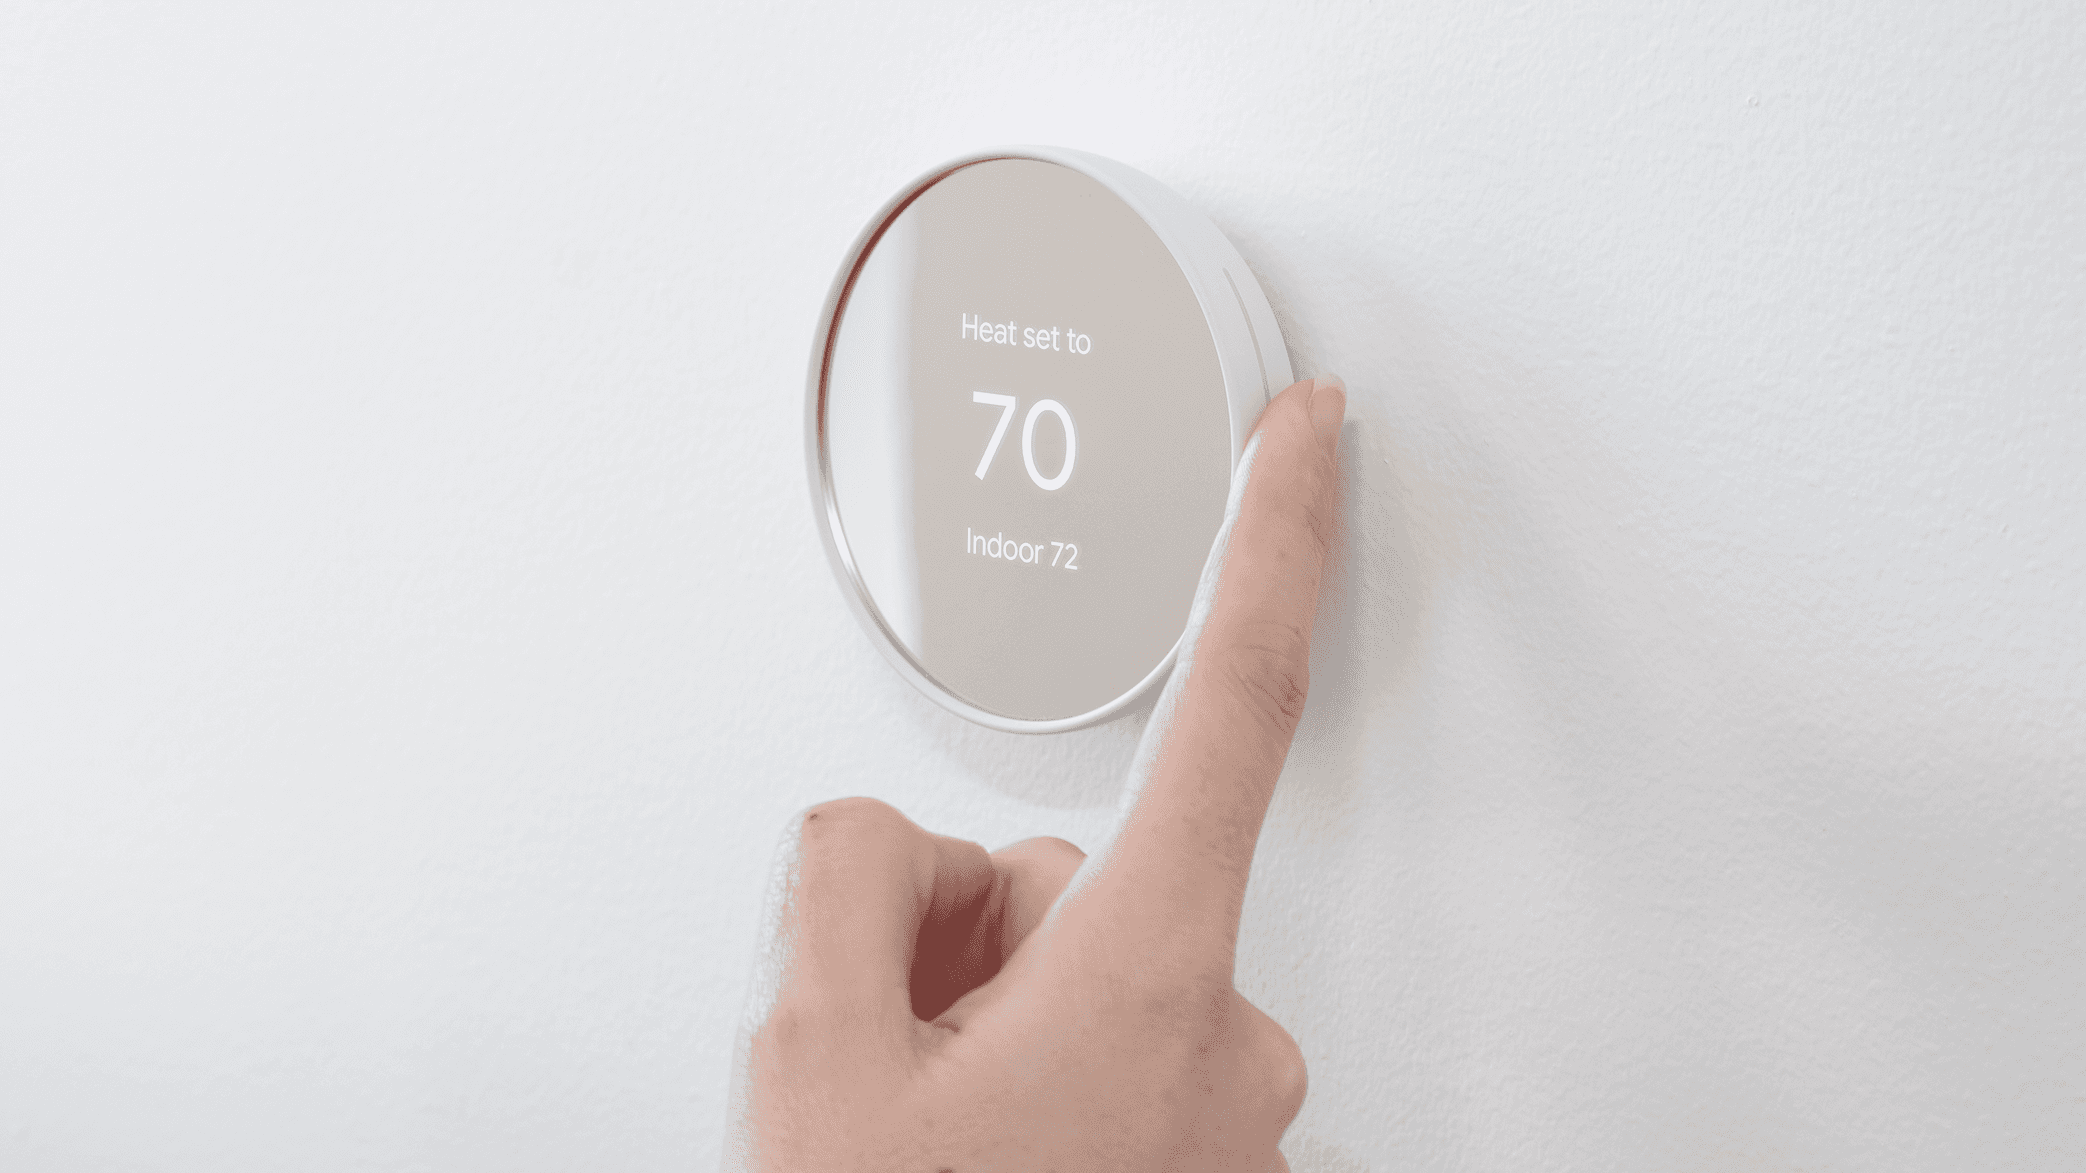 Some Common Questions About Google Nest Thermostat Installation